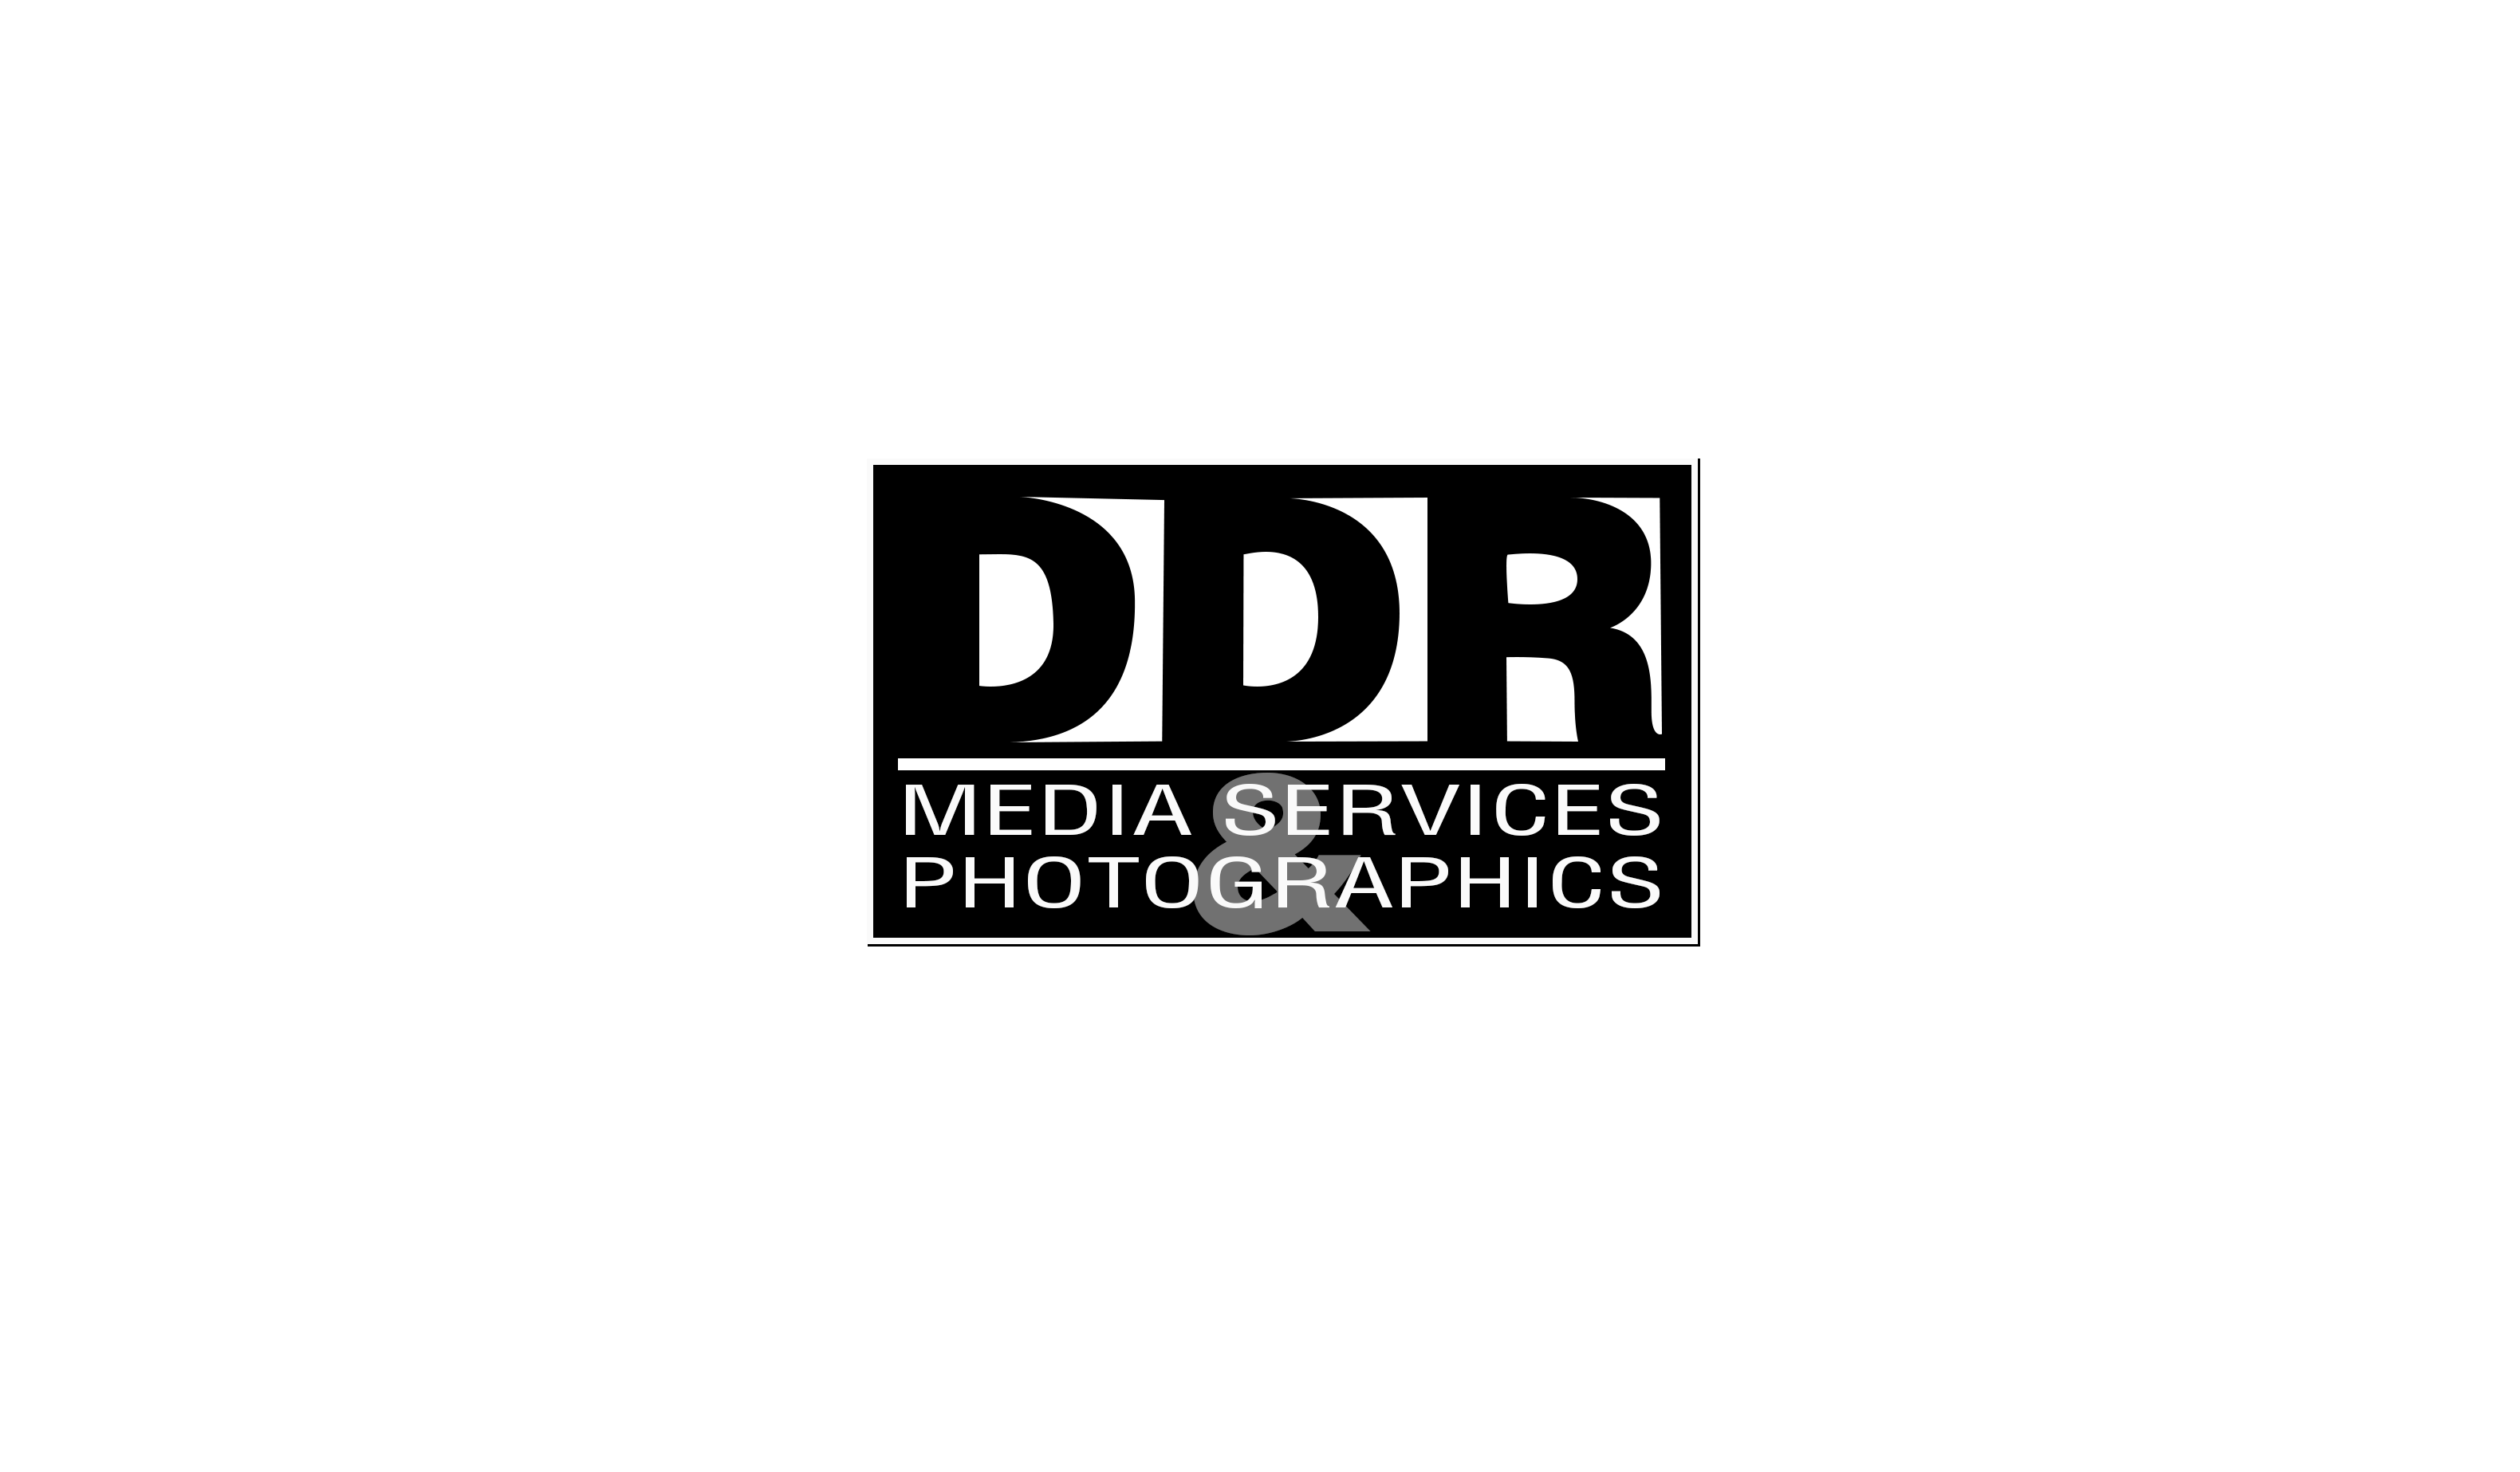 small logo for DDR Media Services